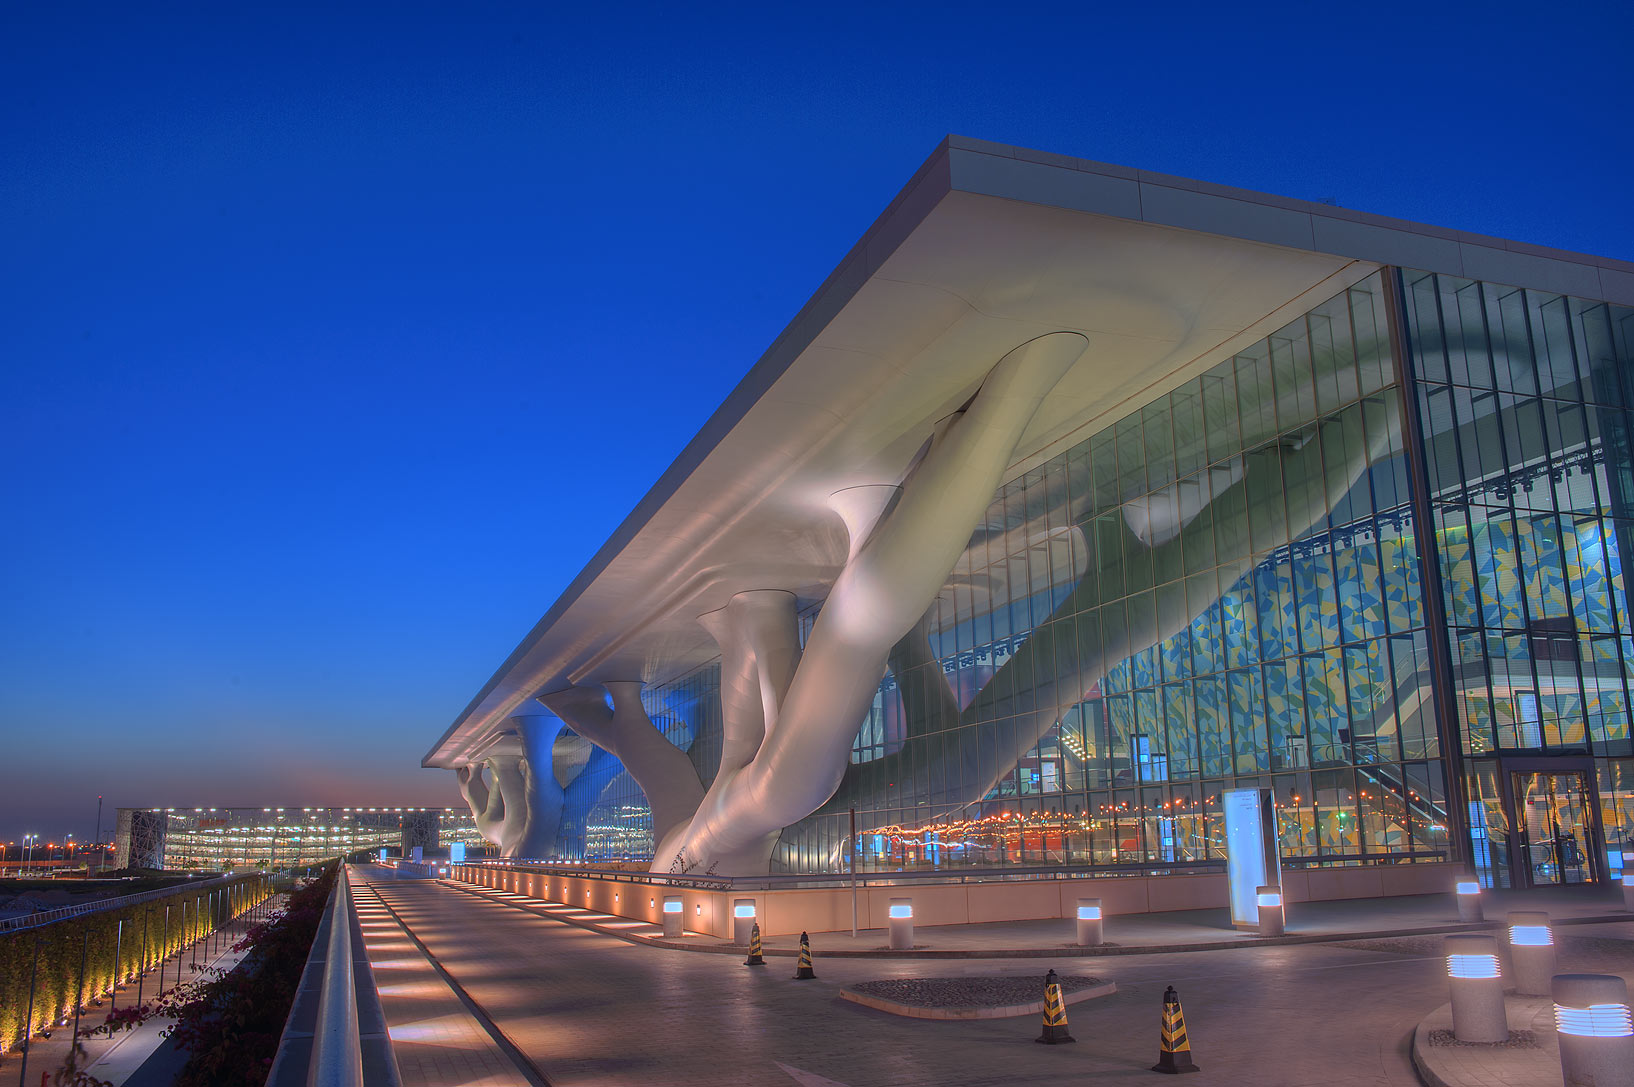 Entrance road of National Convention Centre (QNCC) at dusk. Doha, Qatar